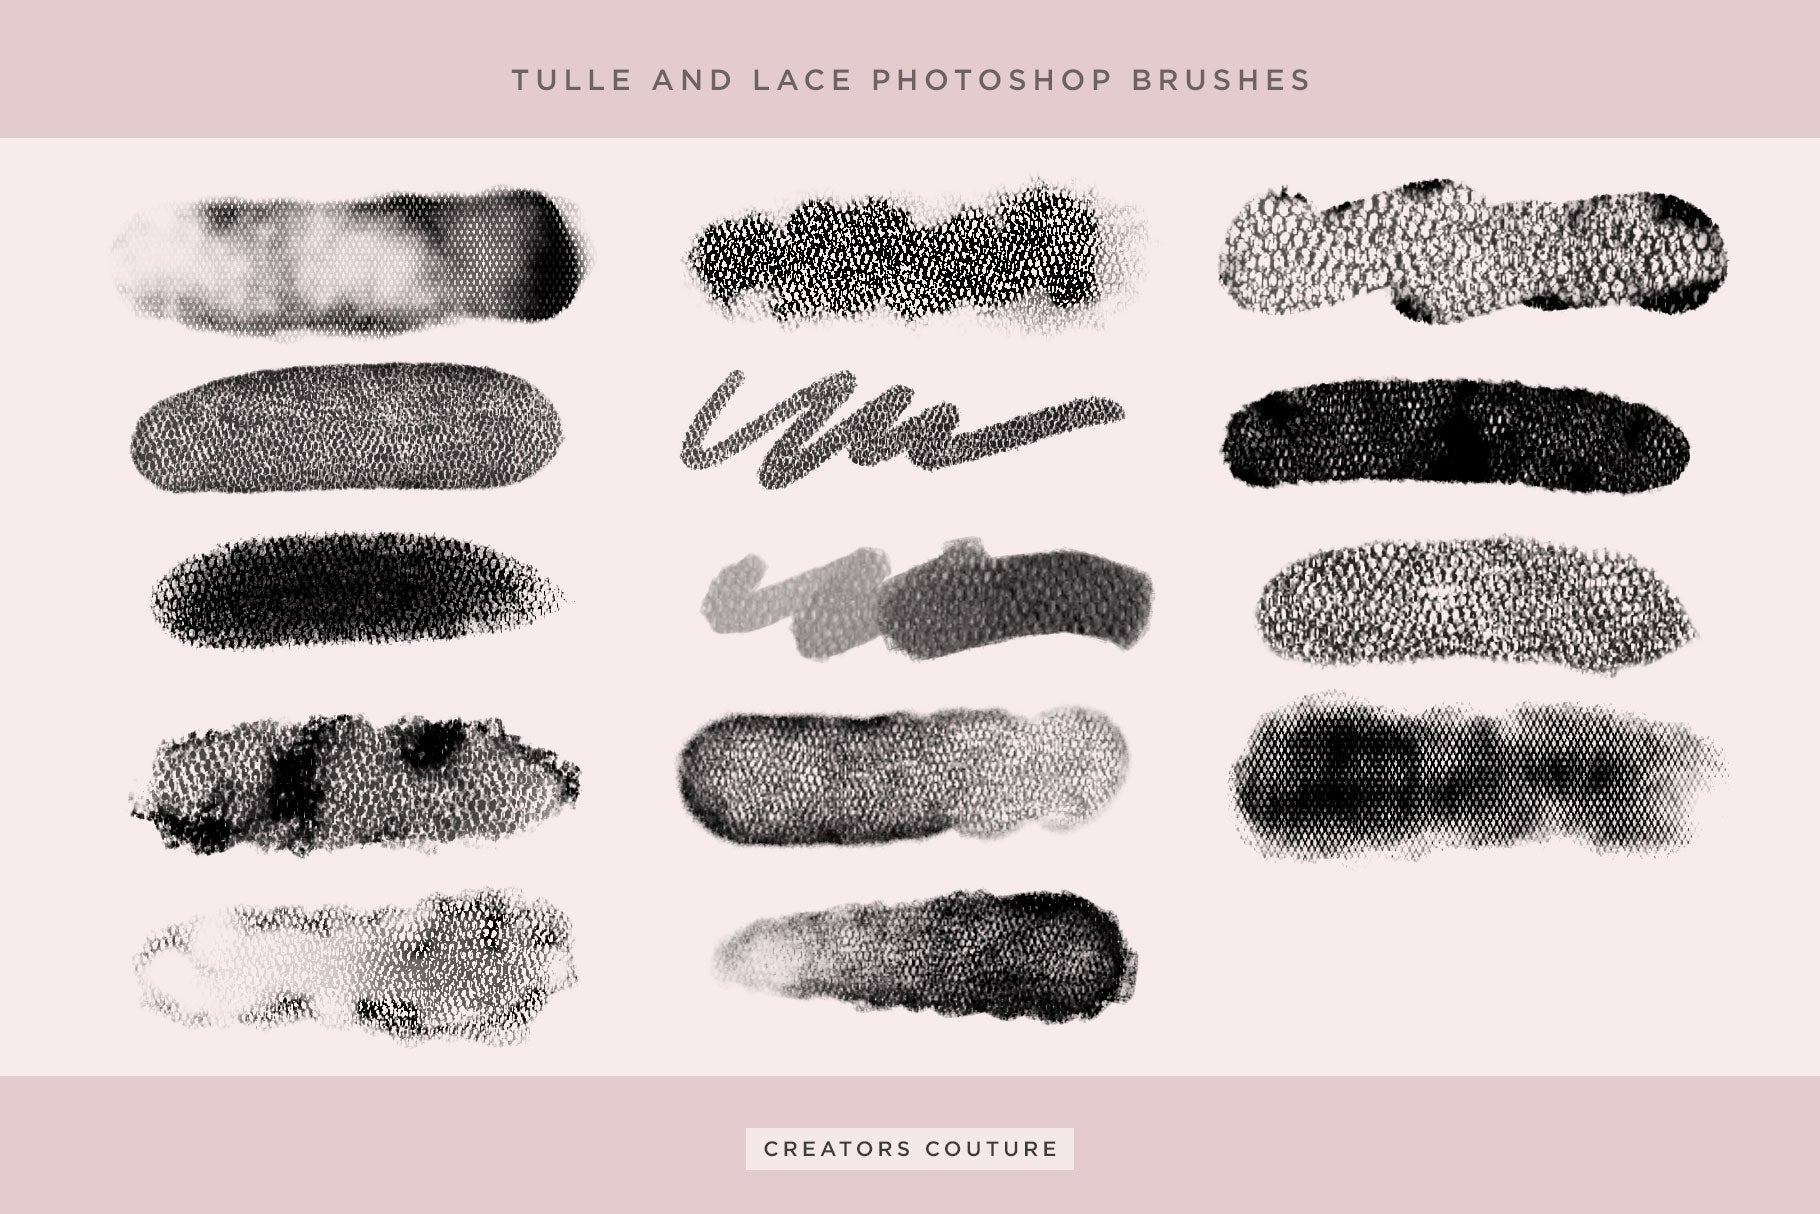 Artistic Tulle and Lace Fashion Inspired Photoshop Brush preview sheet